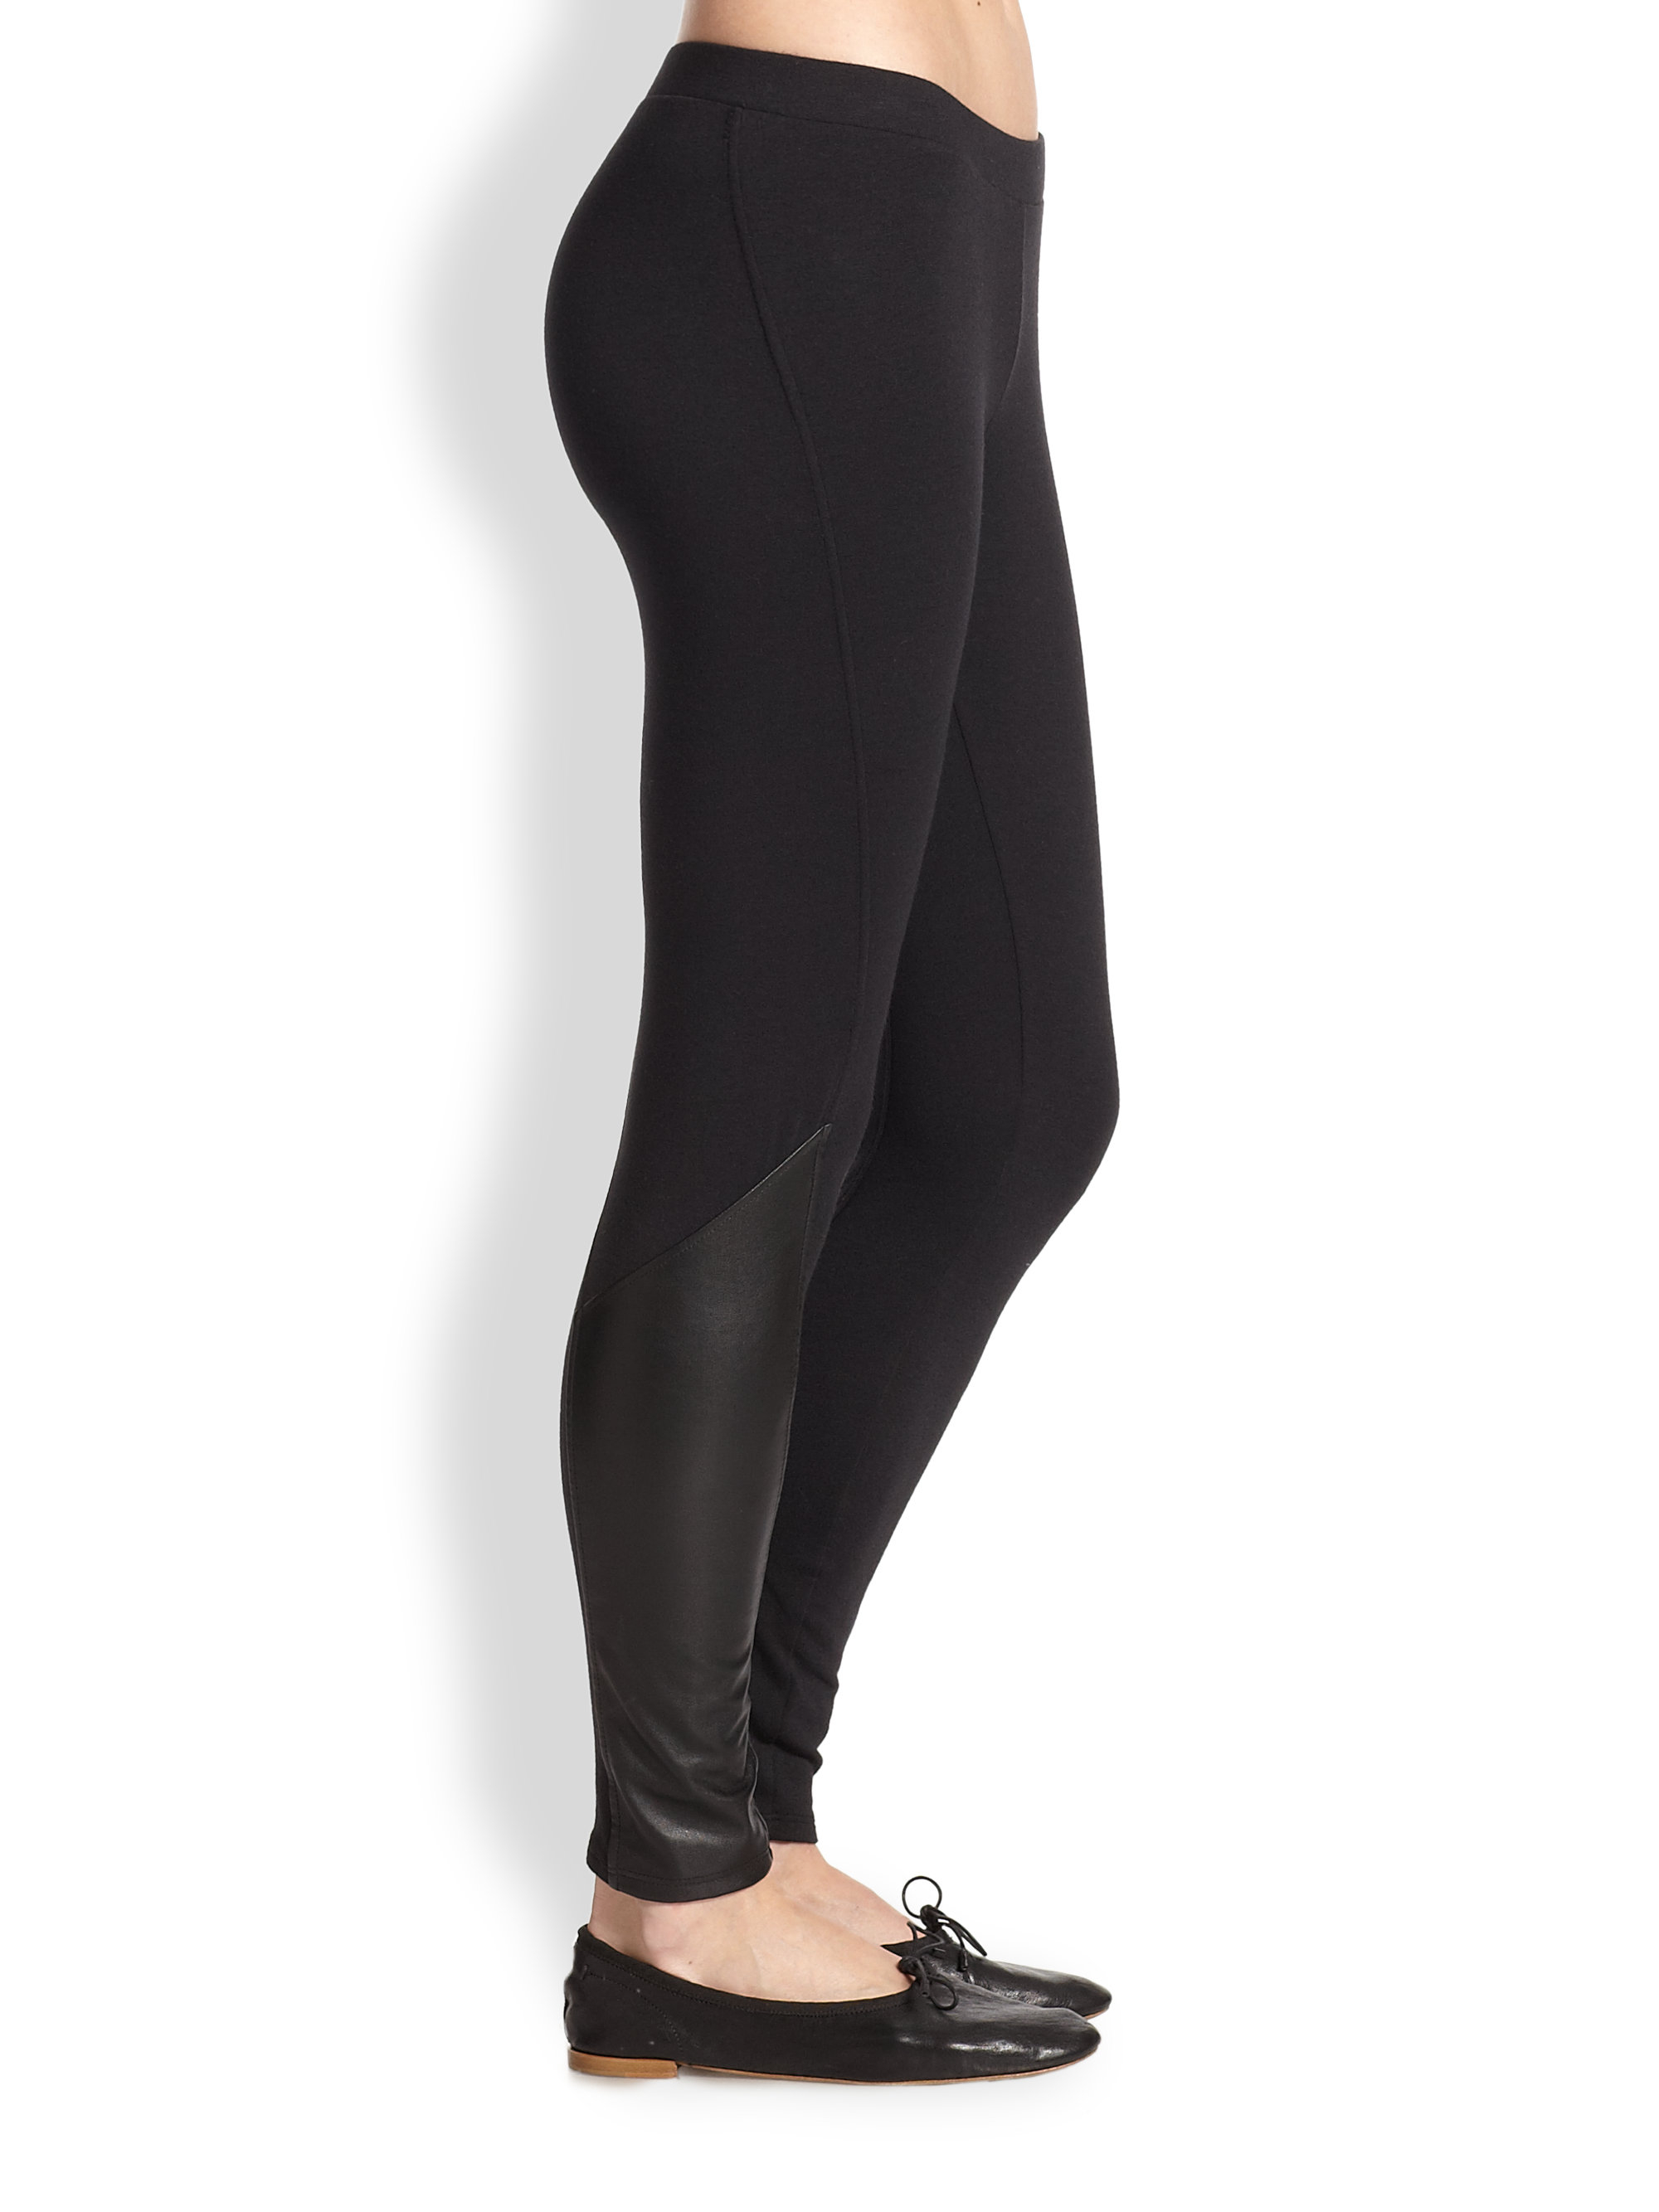 6437c0db75ace9 Gallery. Previously sold at: Saks Fifth Avenue · Women's Faux Leather Pants  ...